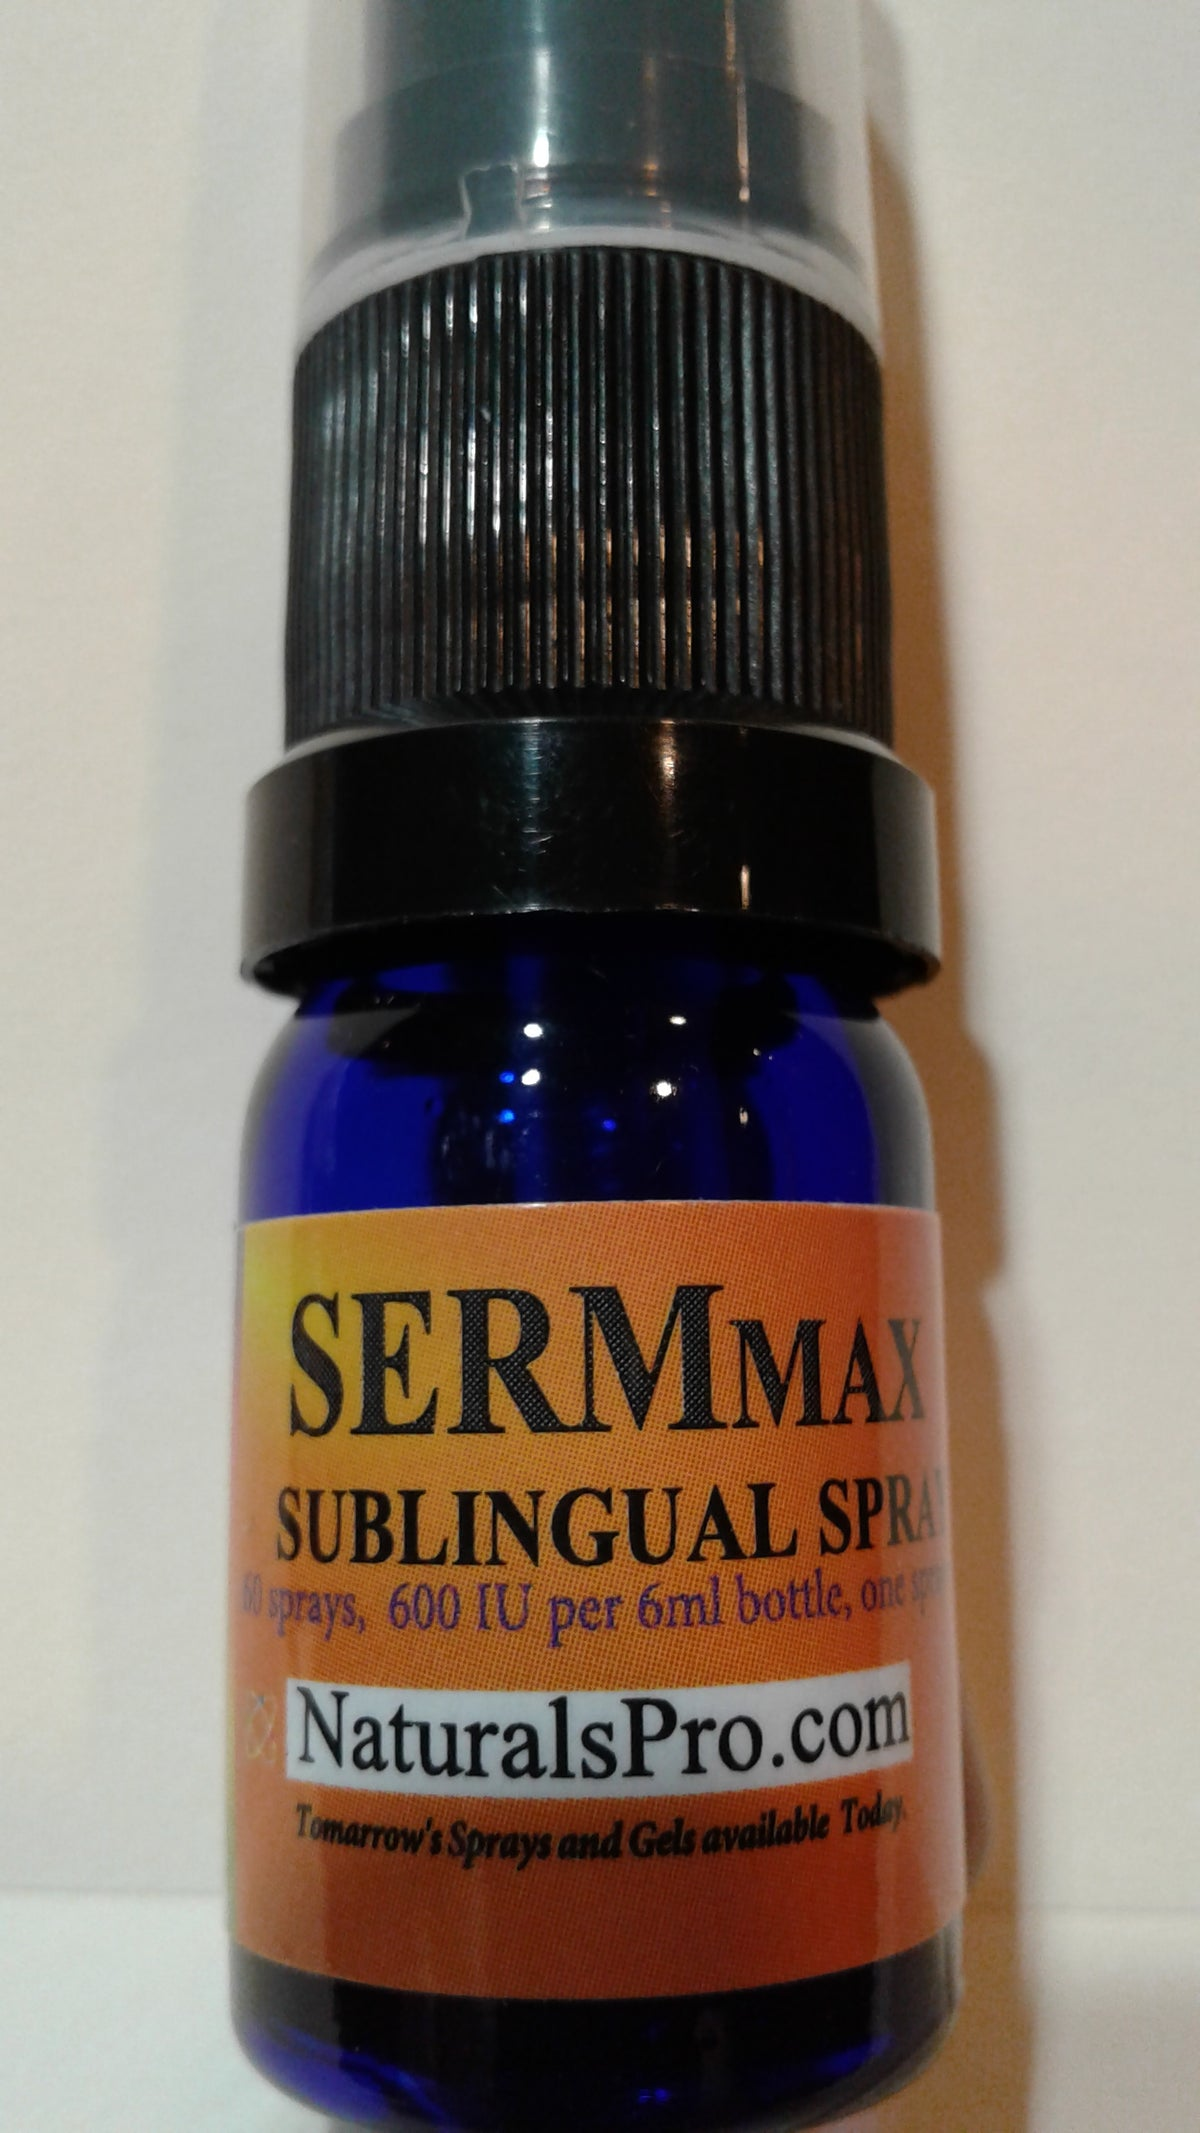 The Revolutionary SermMax for optimal health!